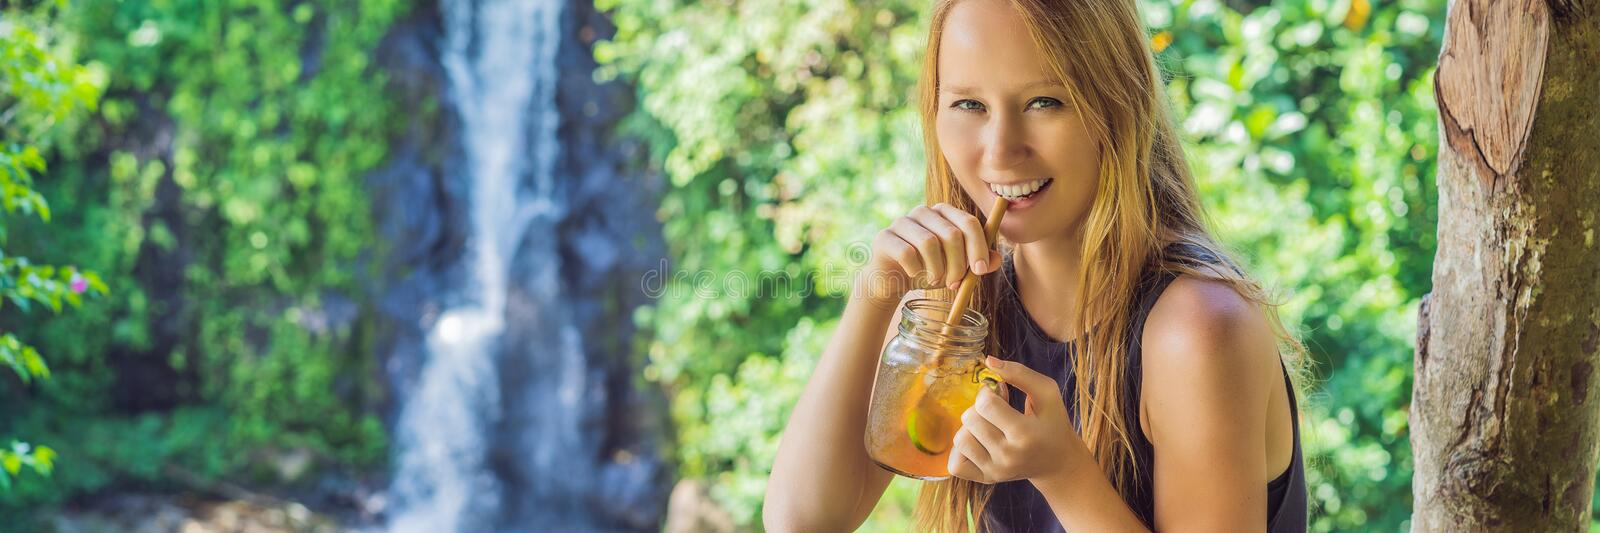 Closeup portrait image of a beautiful woman drinking ice tea with feeling happy in green nature and waterfall garden stock photo